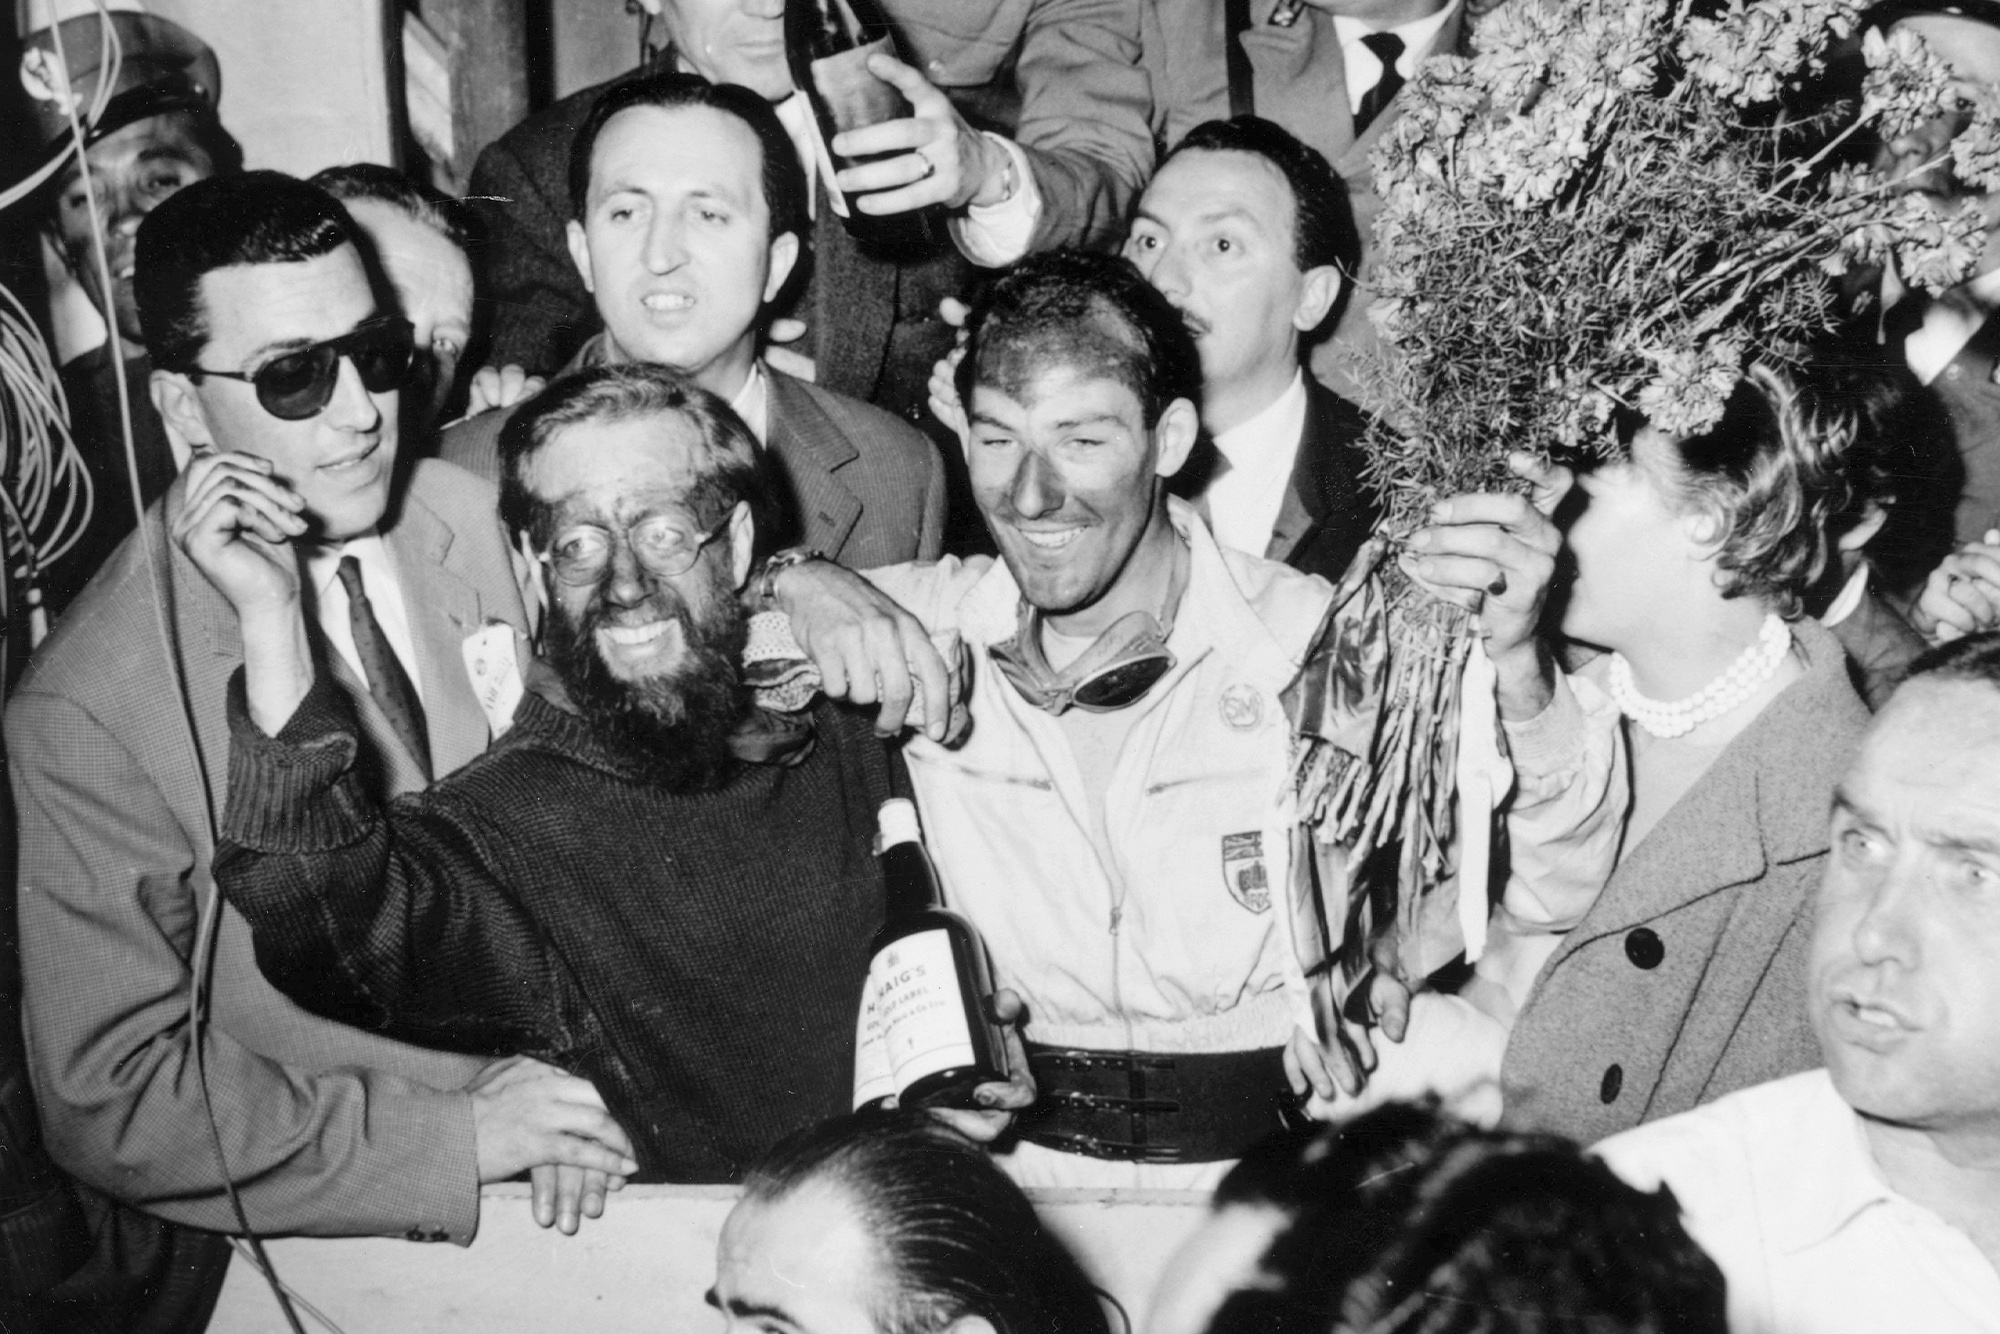 Stirling Moss and Denis JEnkinson celebrate victory in the 1955 Mille Miglia